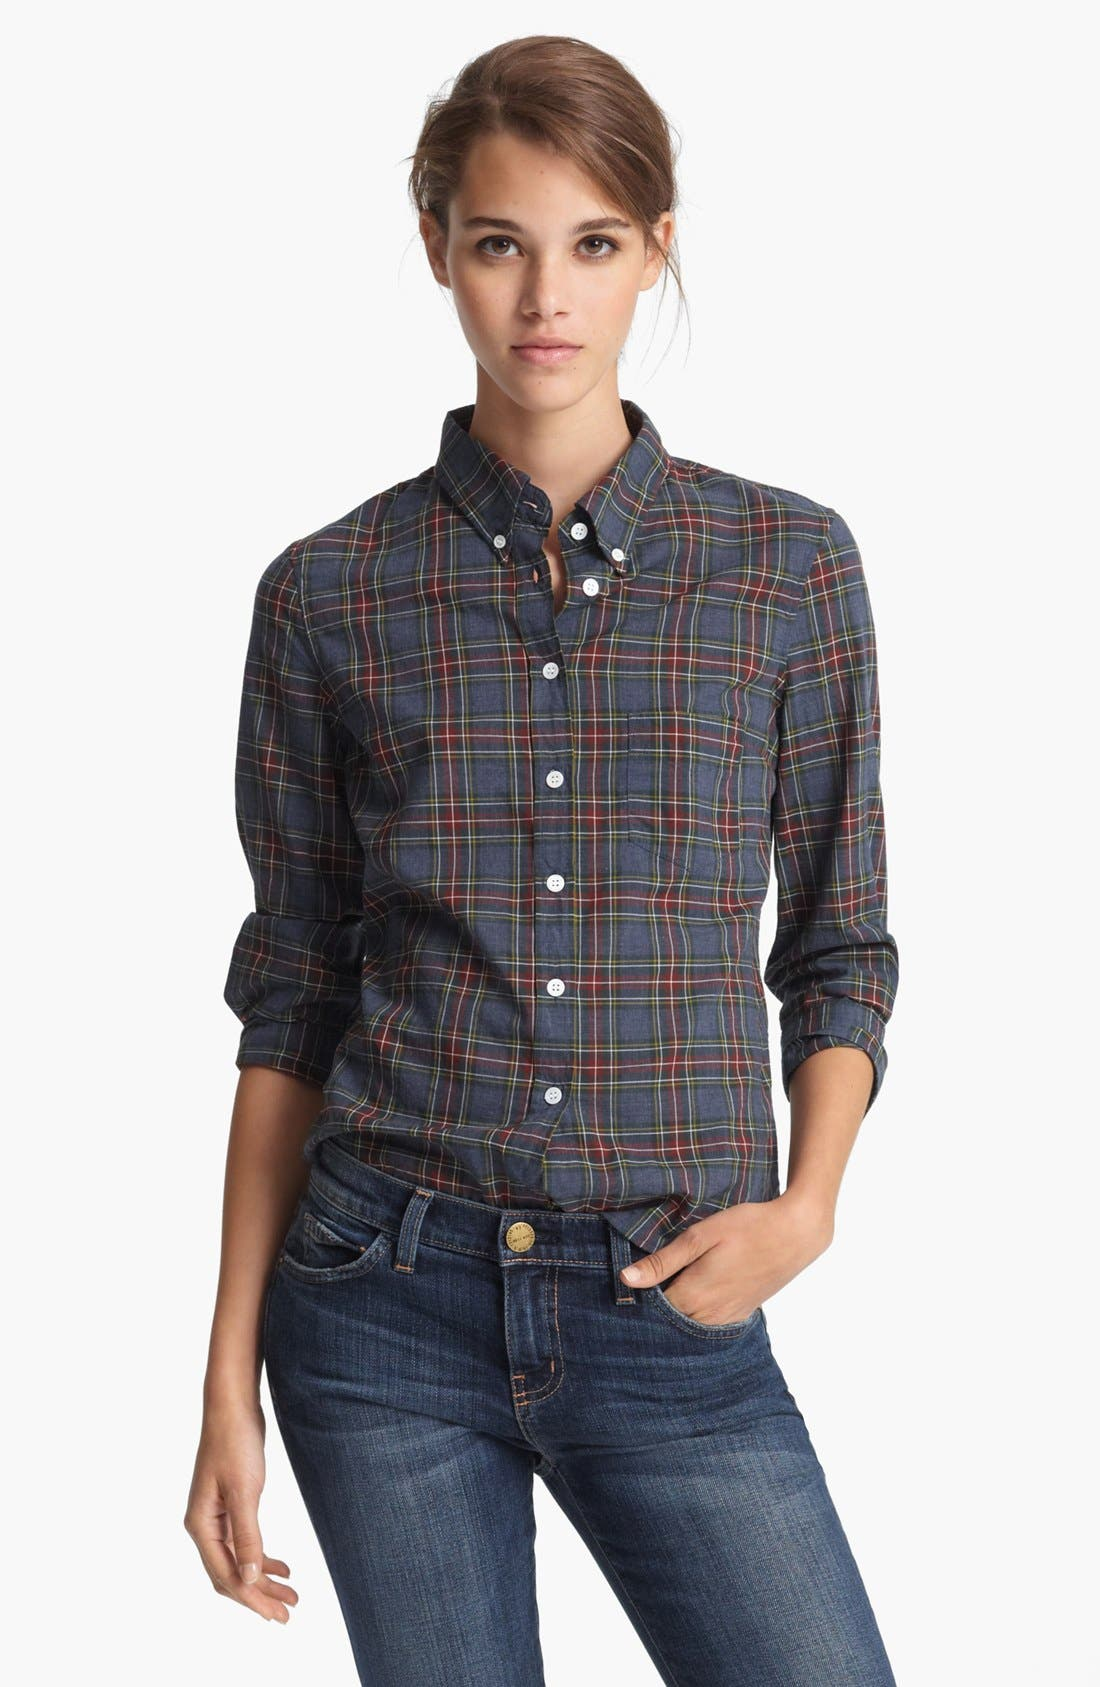 Alternate Image 1 Selected - Band of Outsiders Plaid Shirt